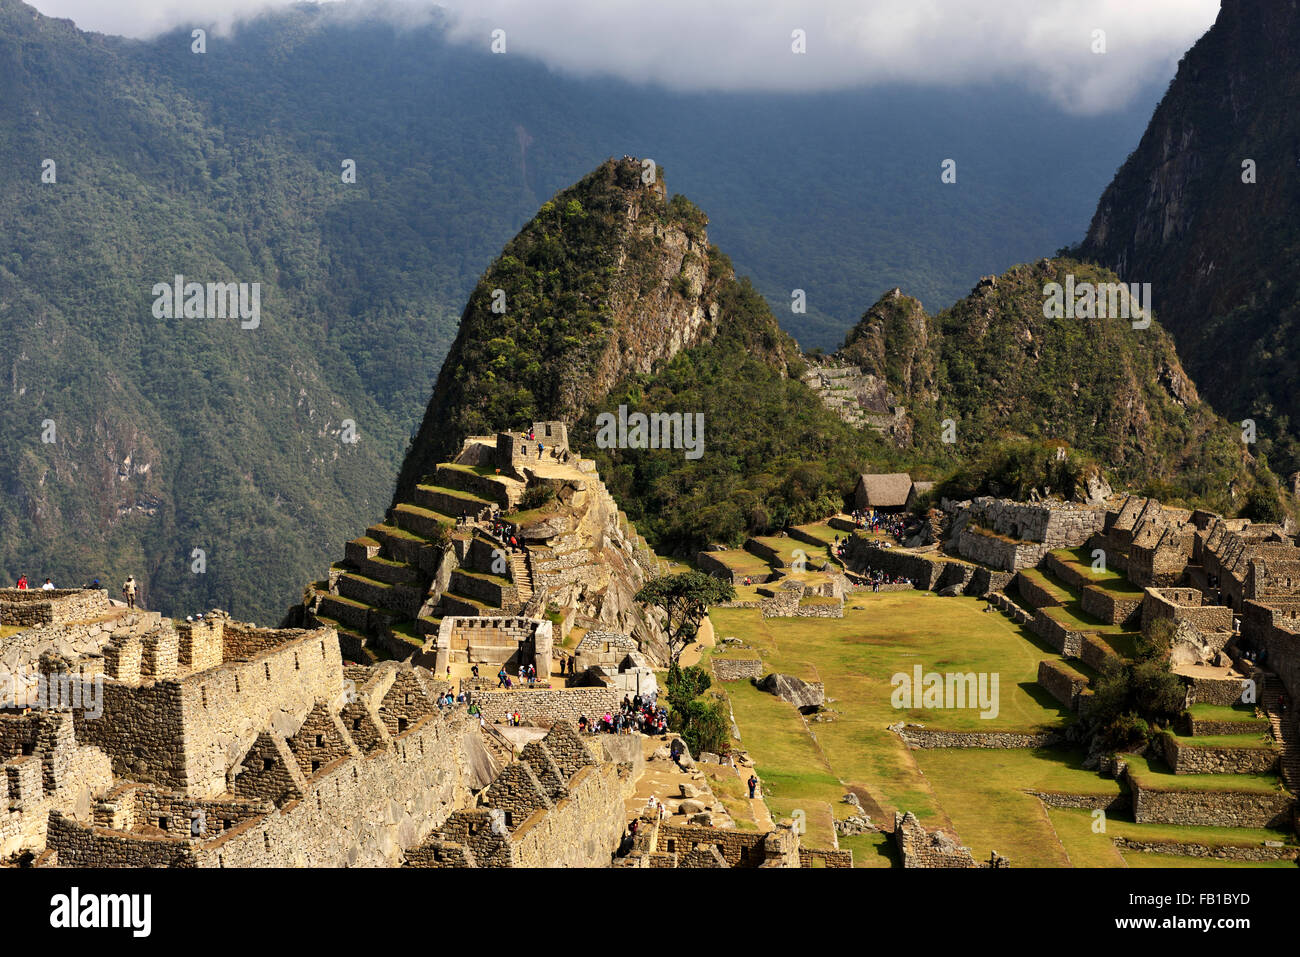 Ruins, Inca city Machu Picchu, UNESCO World Heritage Site, Urubamba, Cusco Province, Peru - Stock Image